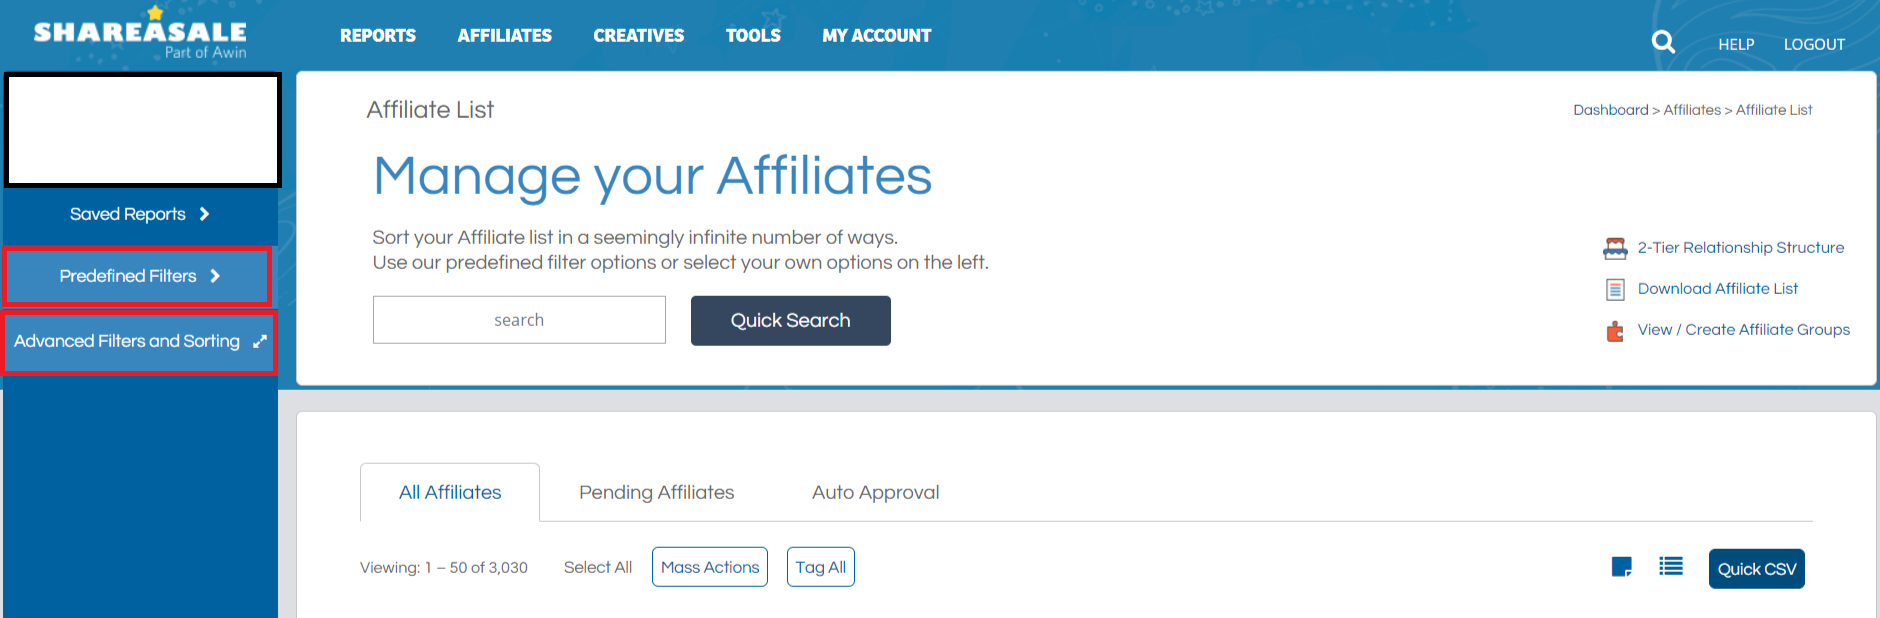 ShareASale Affiliate Filtering & Sorting